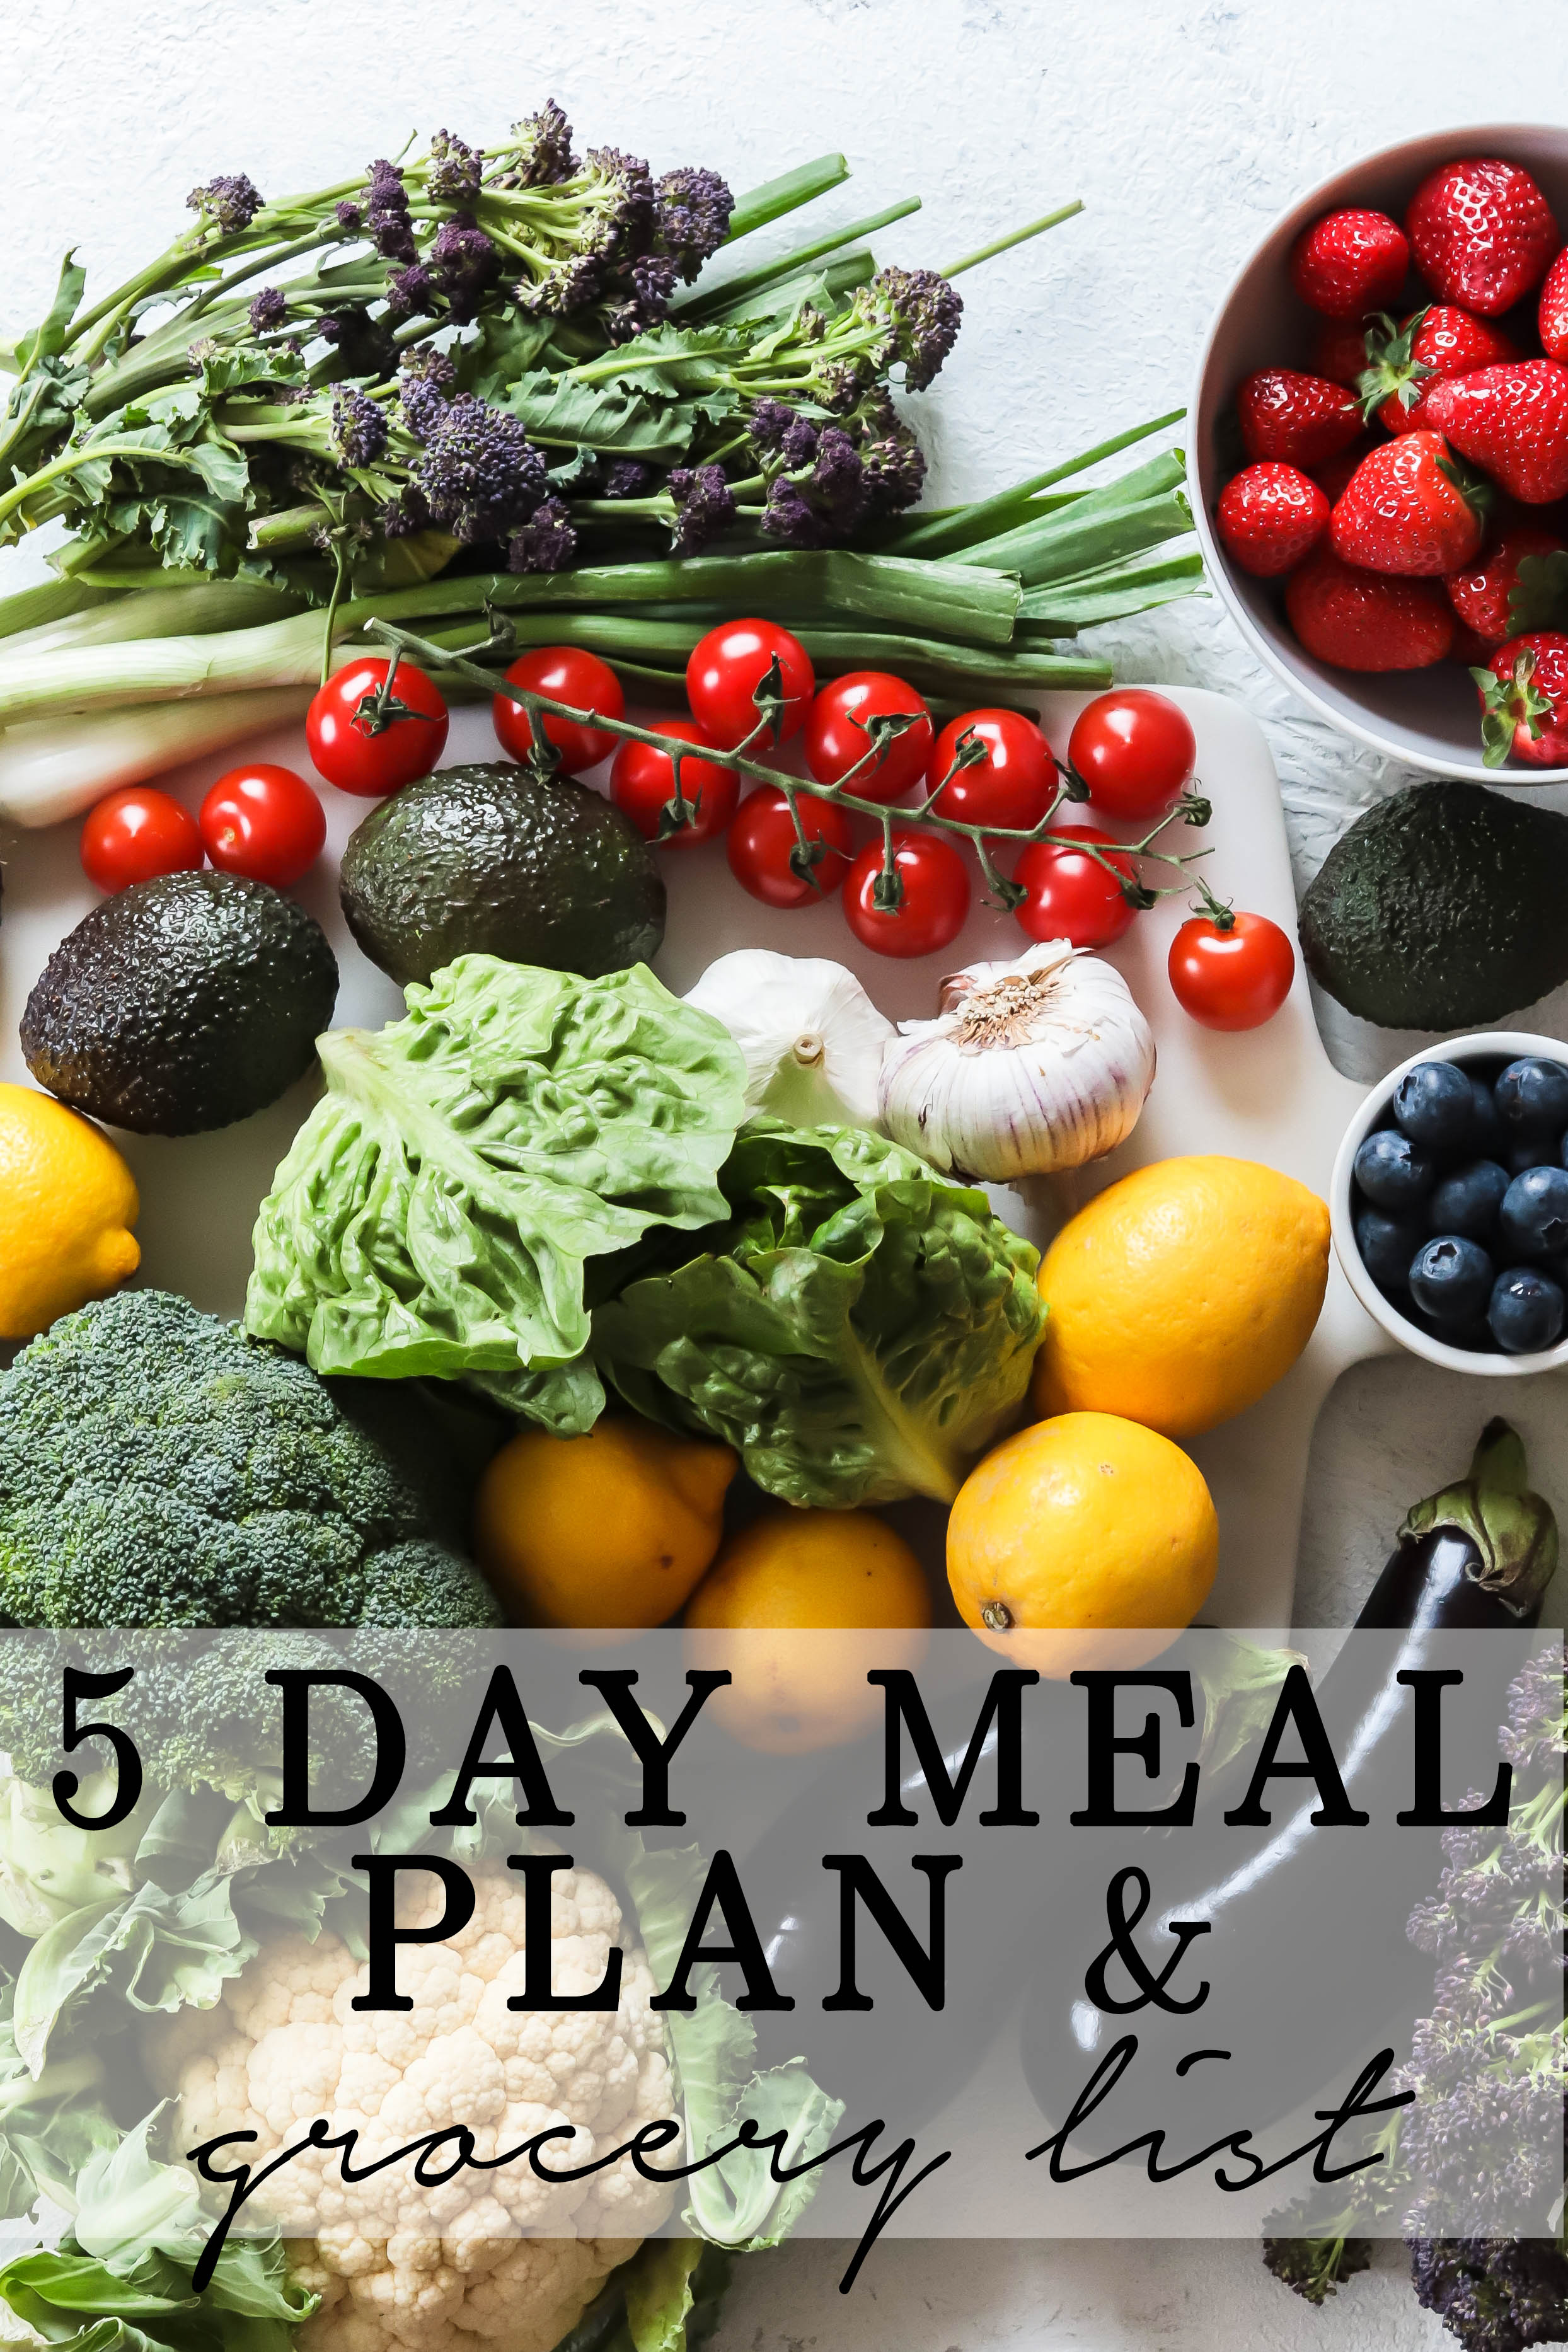 Five day meal plan with grocery list